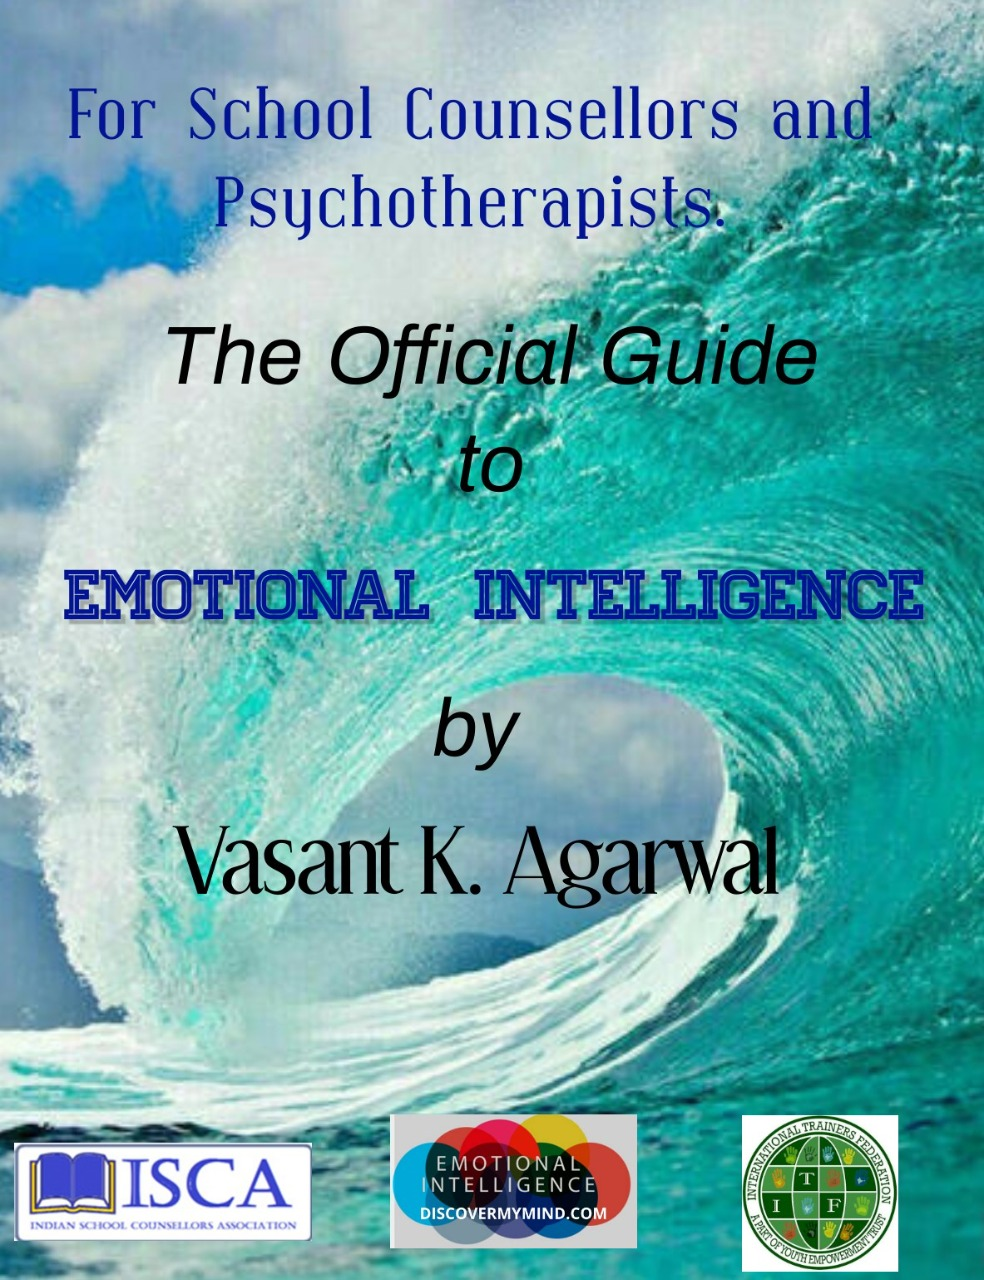 The Complete Guide to Emotional Intelligence